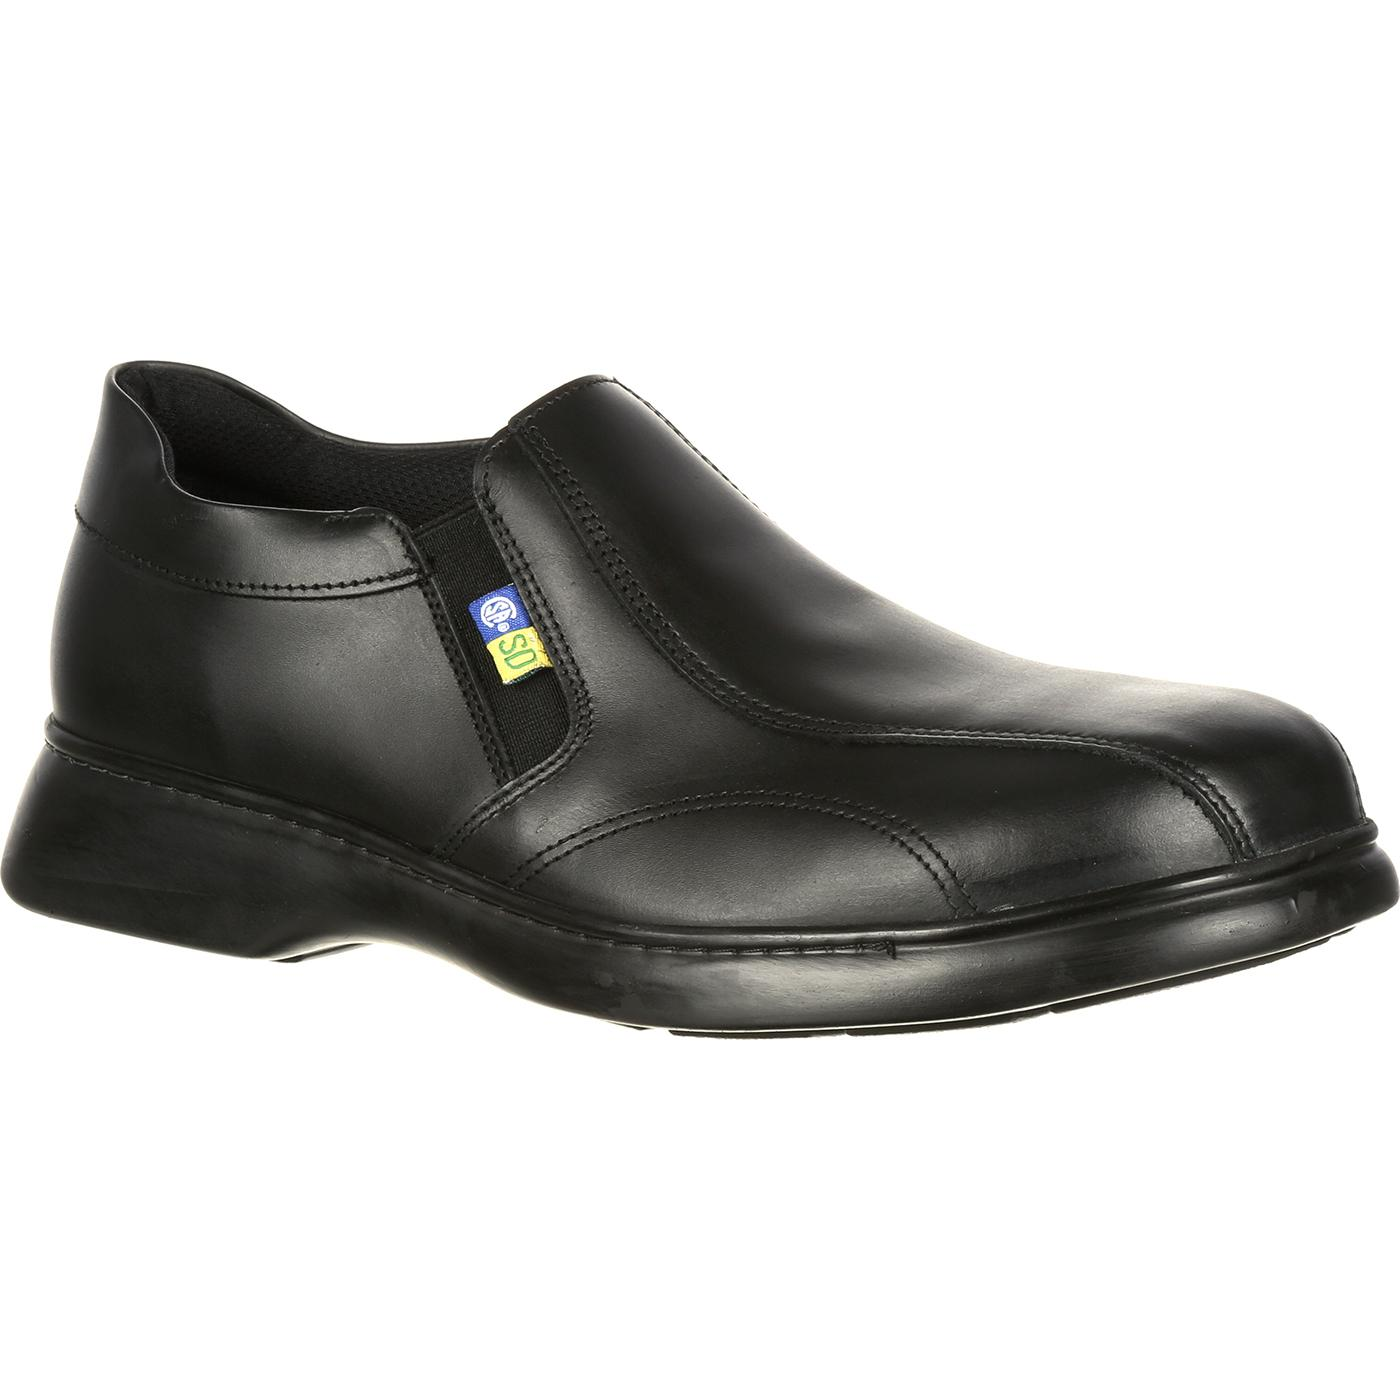 Mens Safety Shoes Slip On